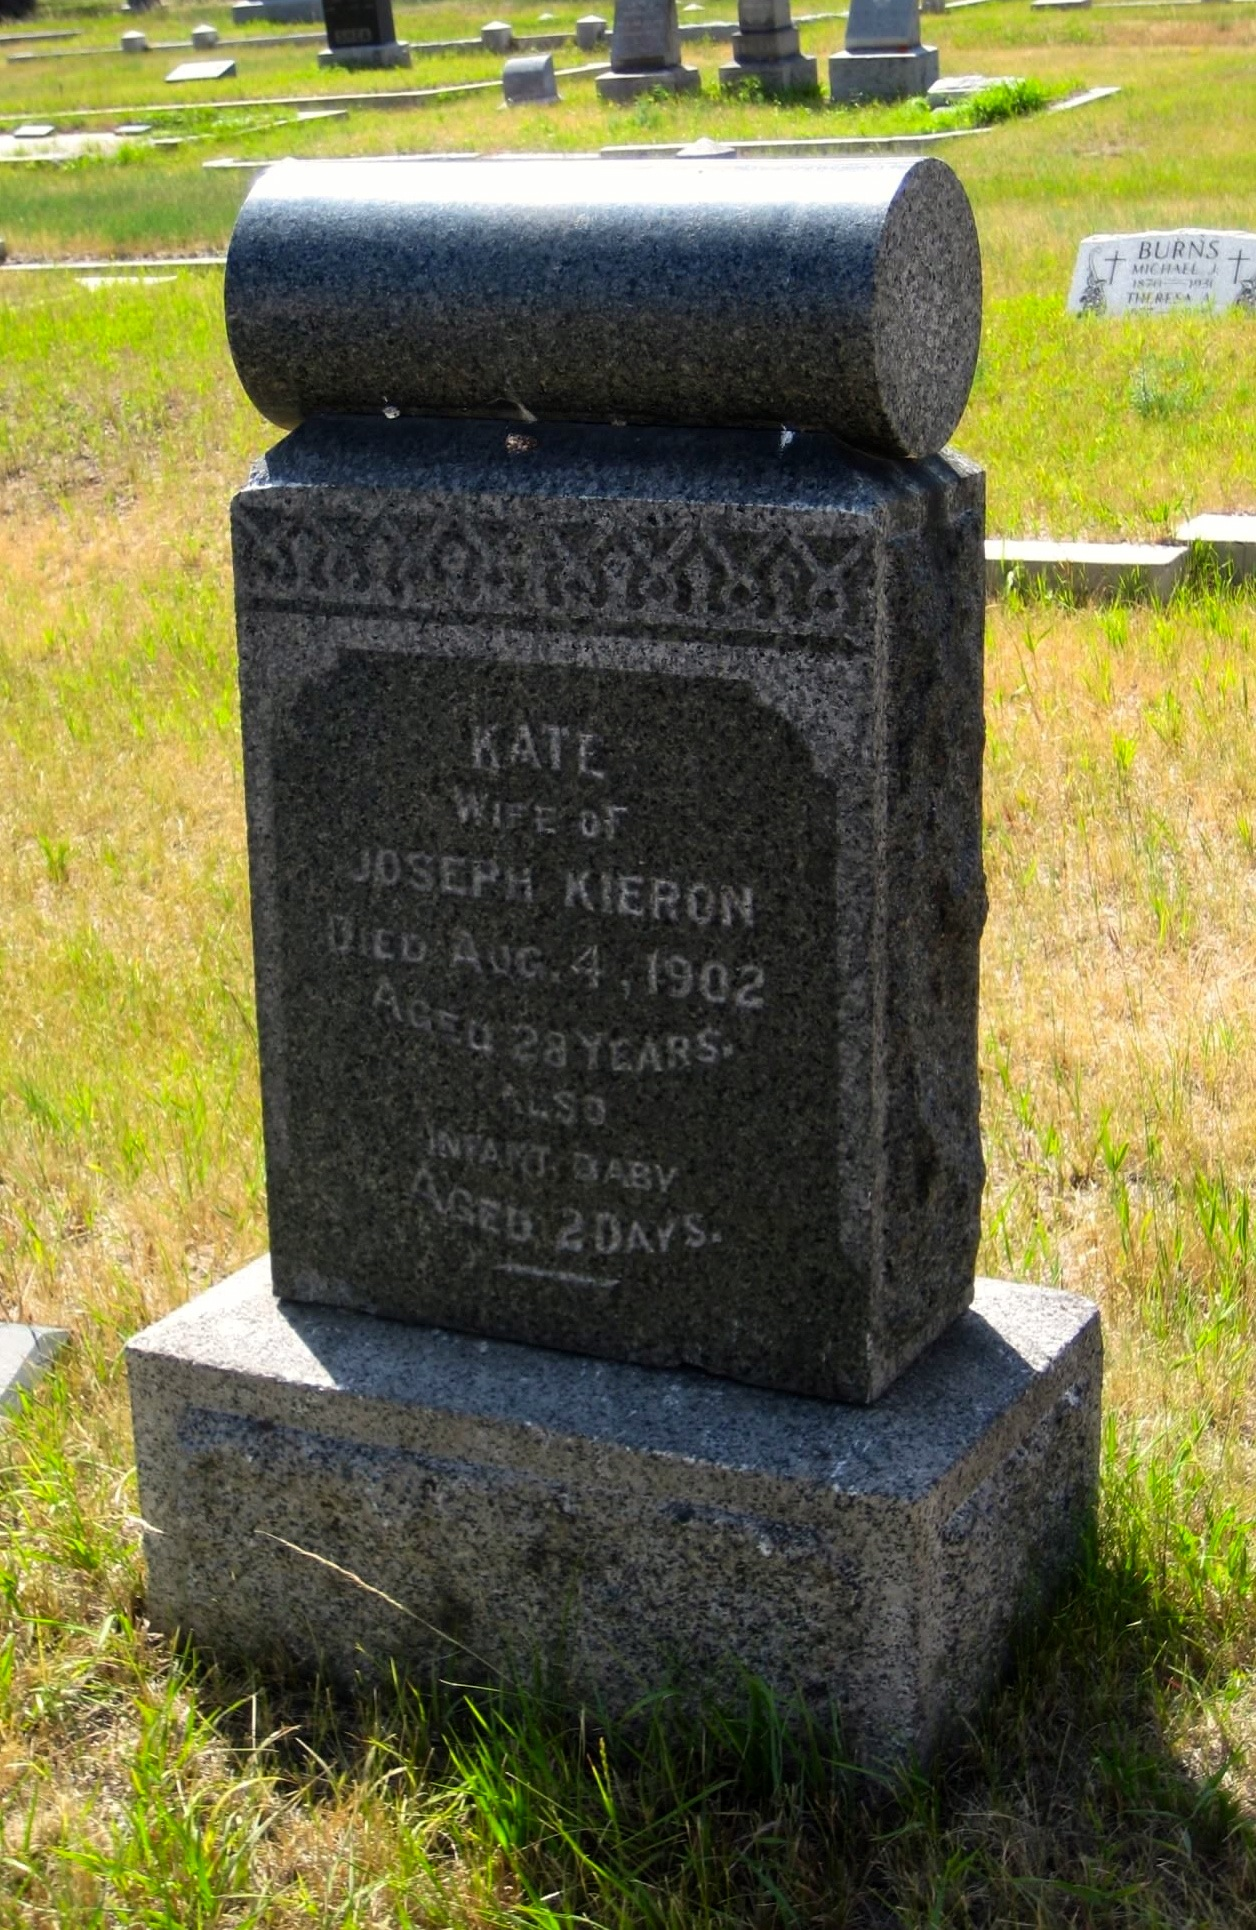 2011 Kate Kieron tombstone